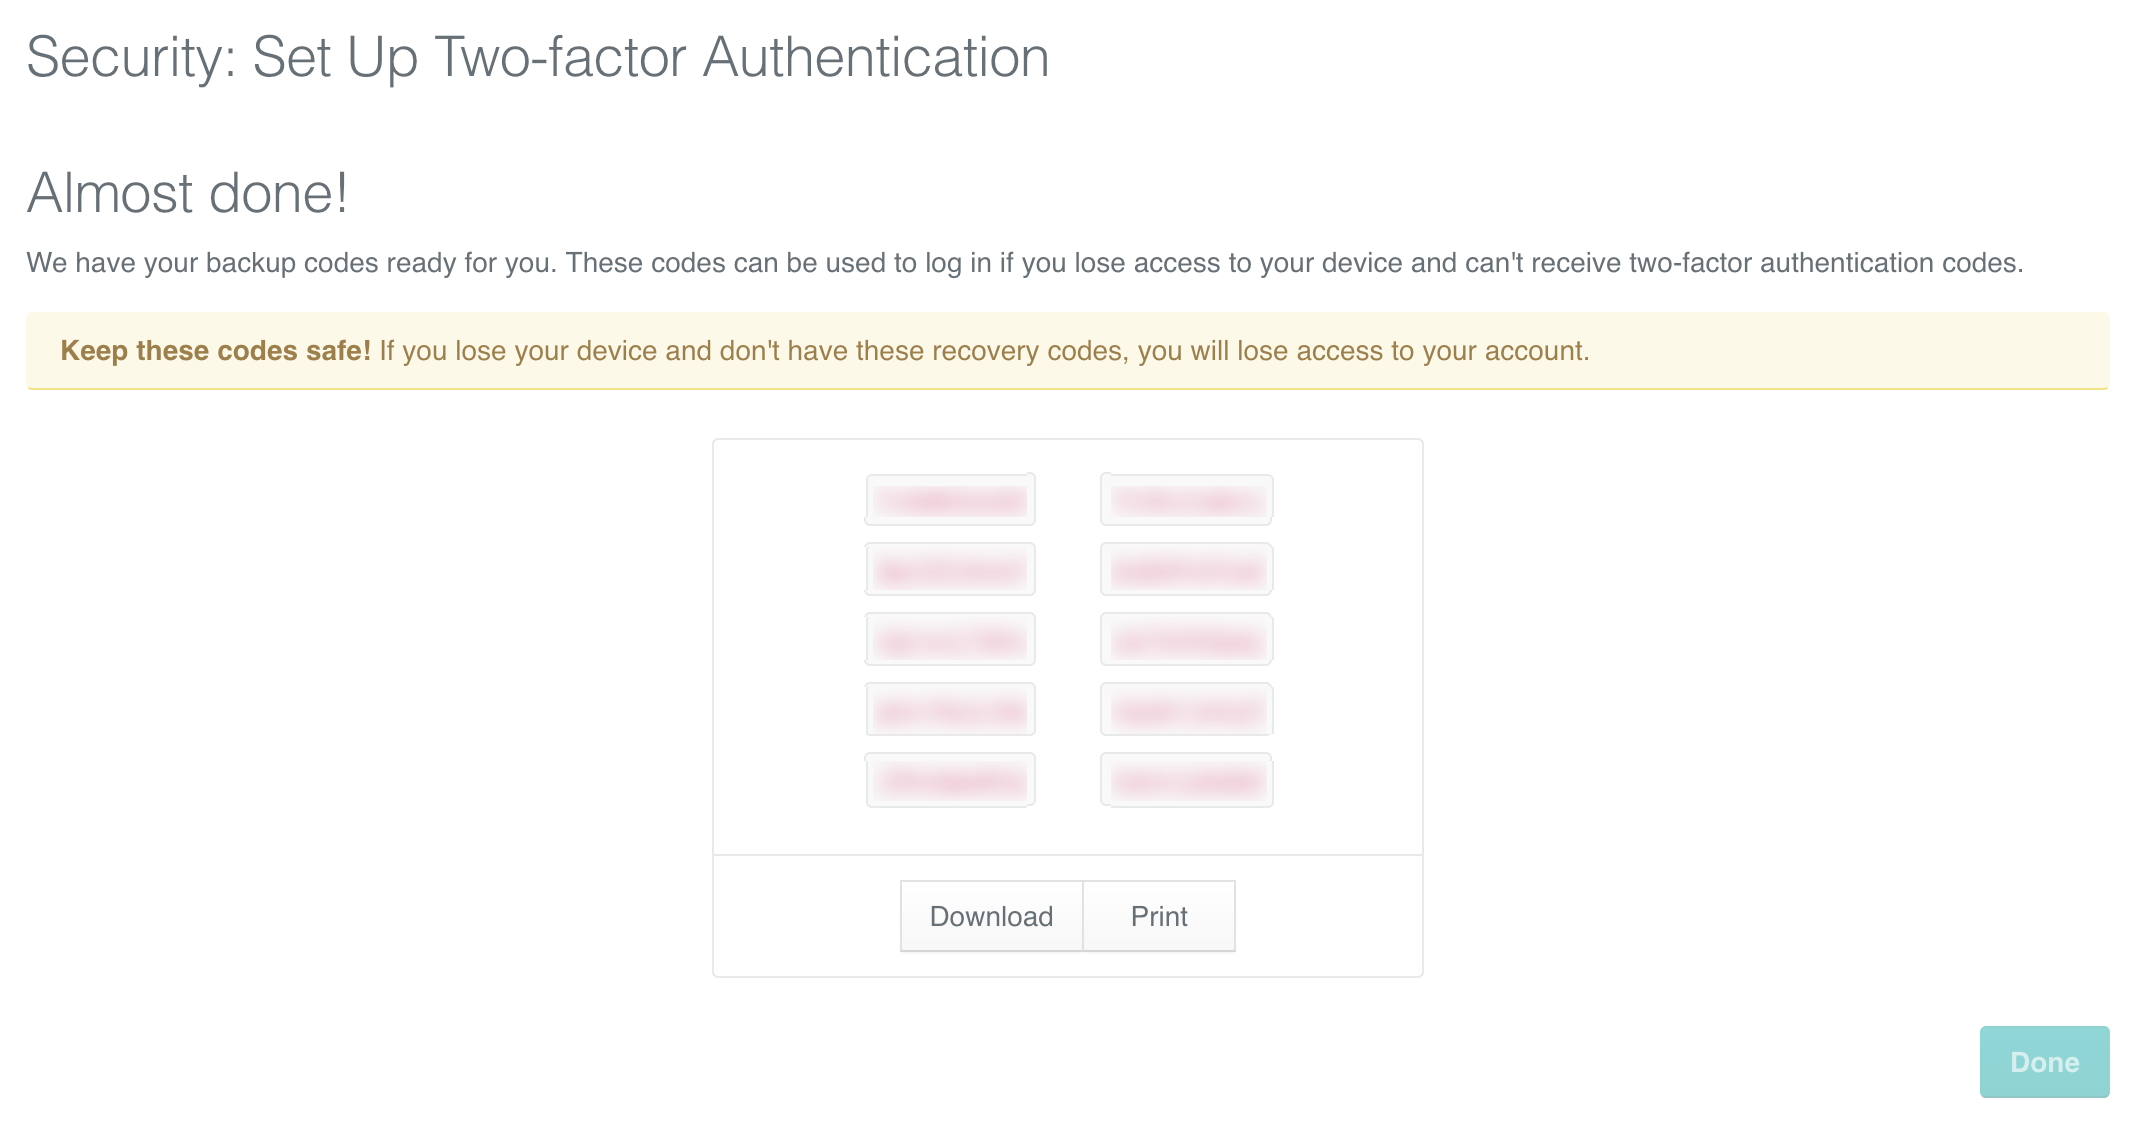 Two-factor authentication: Backup codes